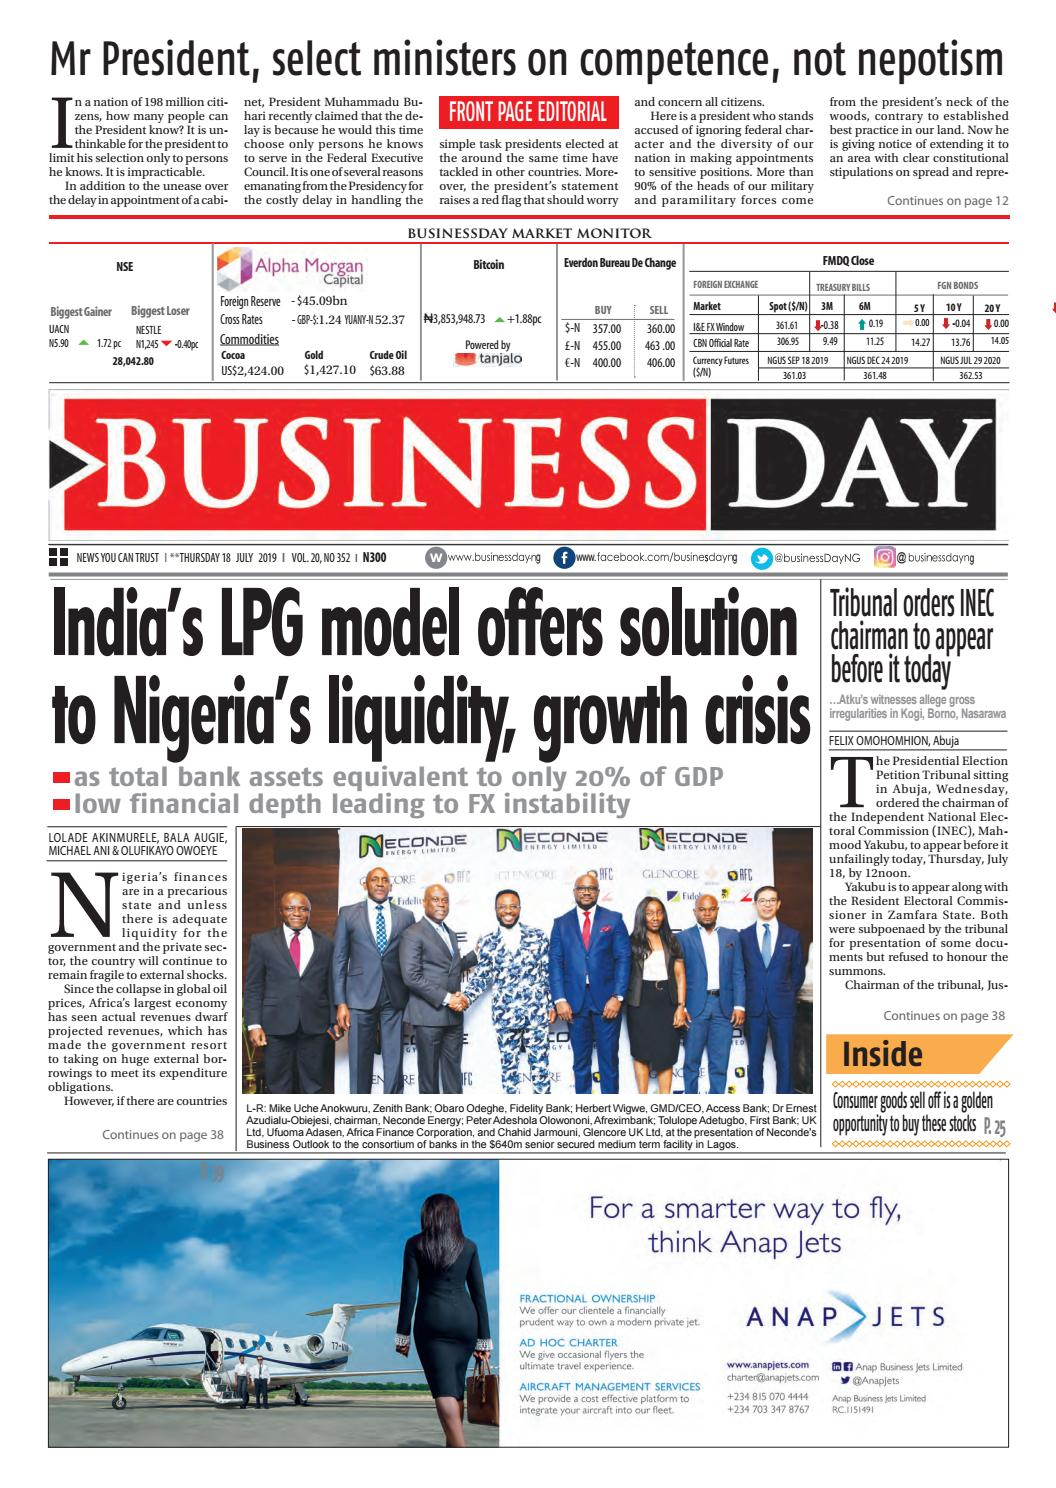 BusinessDay 18 Jul 2019 by BusinessDay - issuu